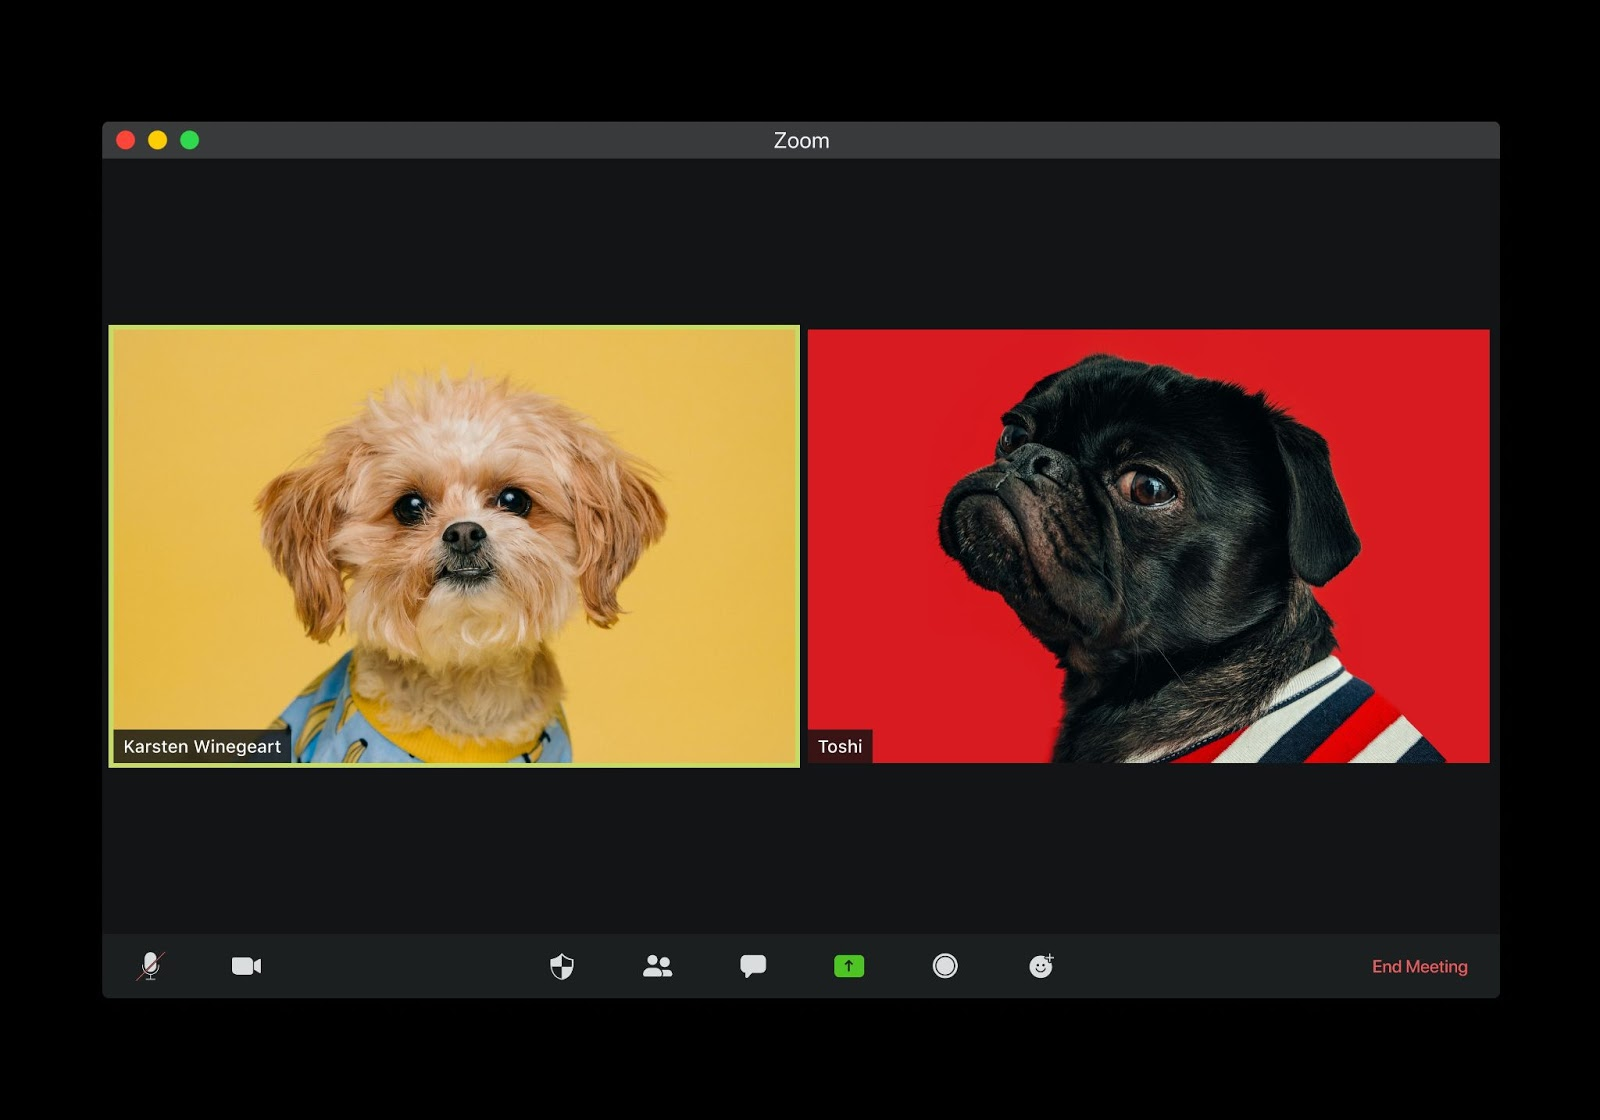 two dogs on a remote work video call